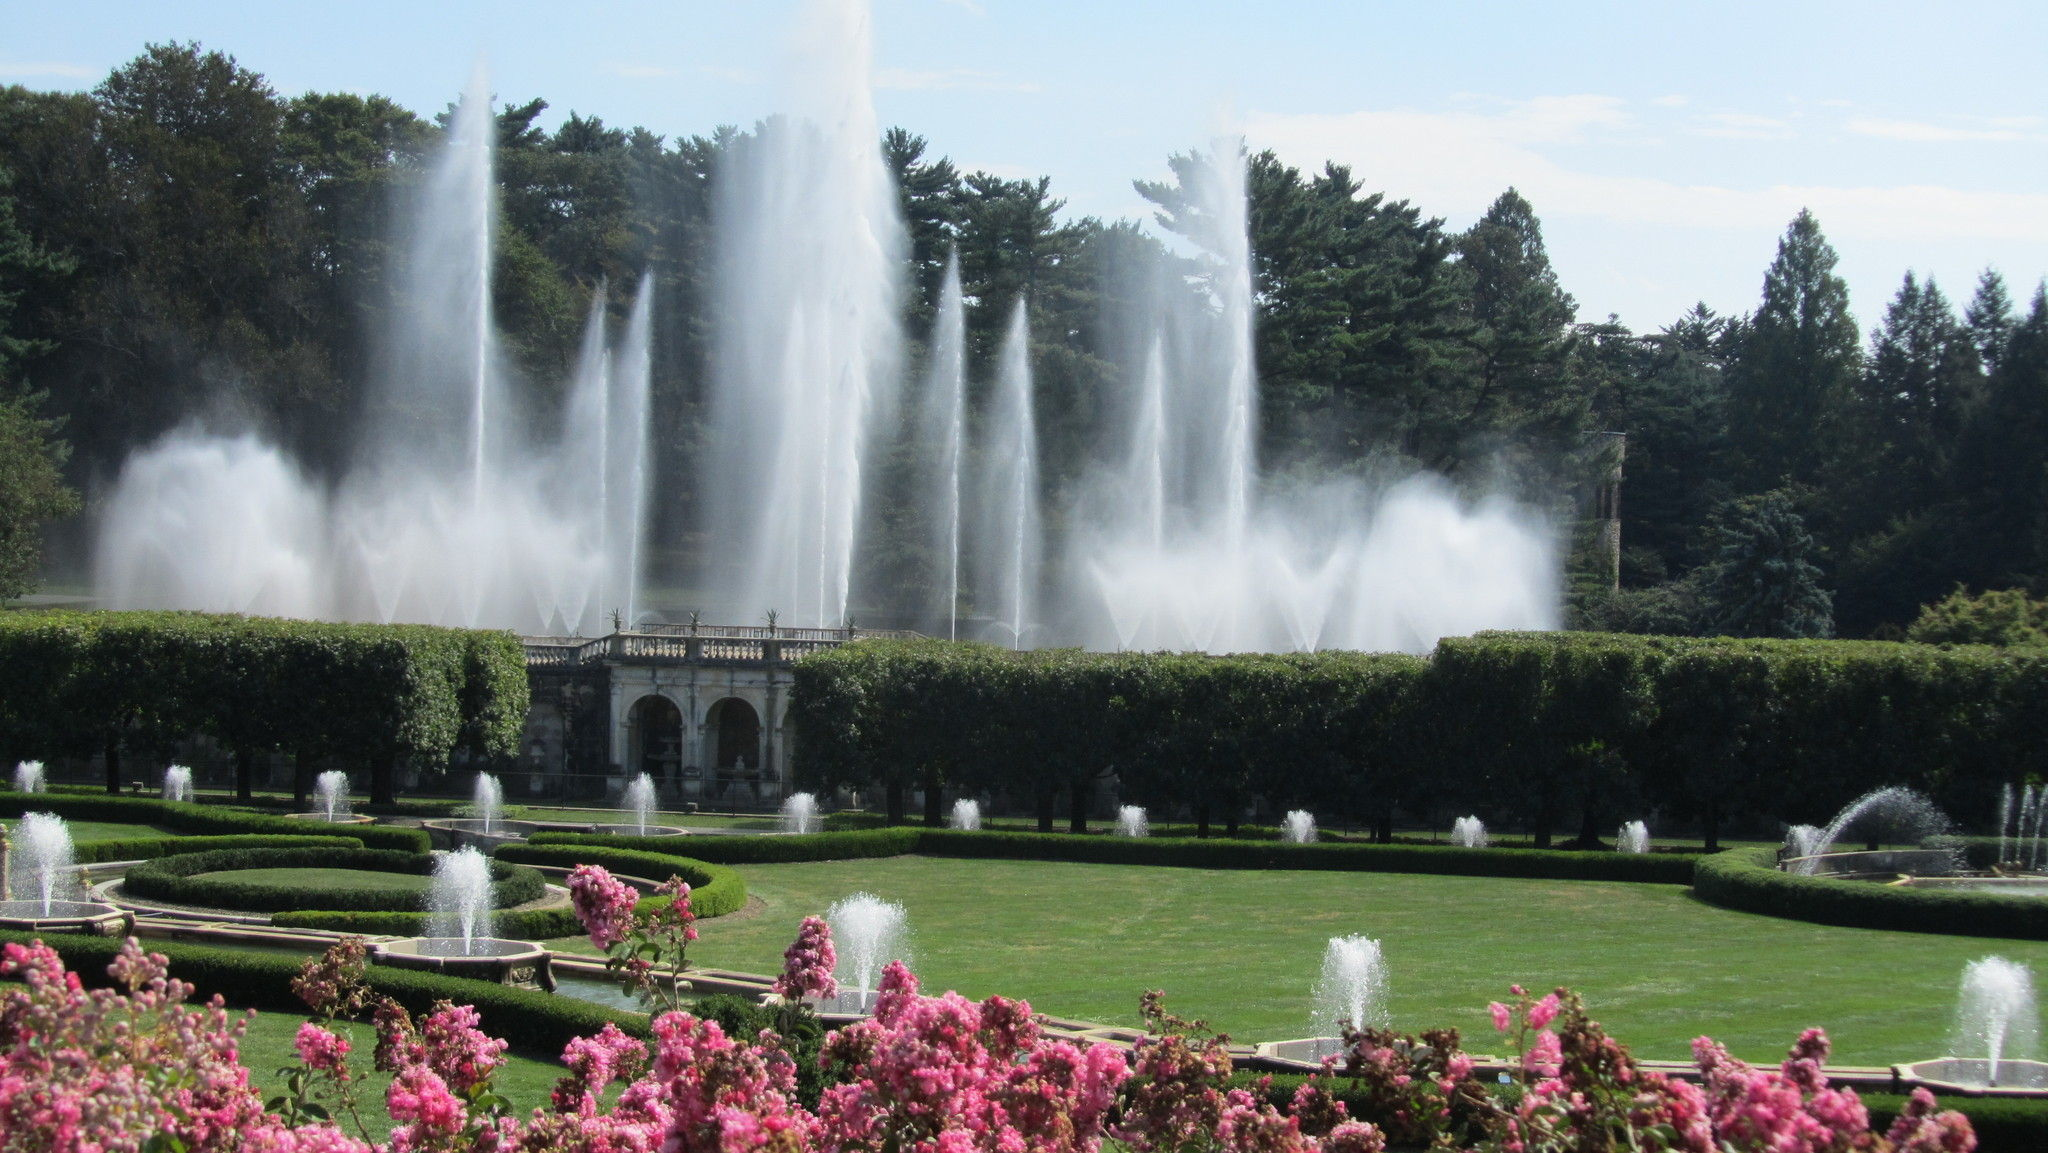 Longwood gardens pennsylvania alltrailscom for Longwood gardens address